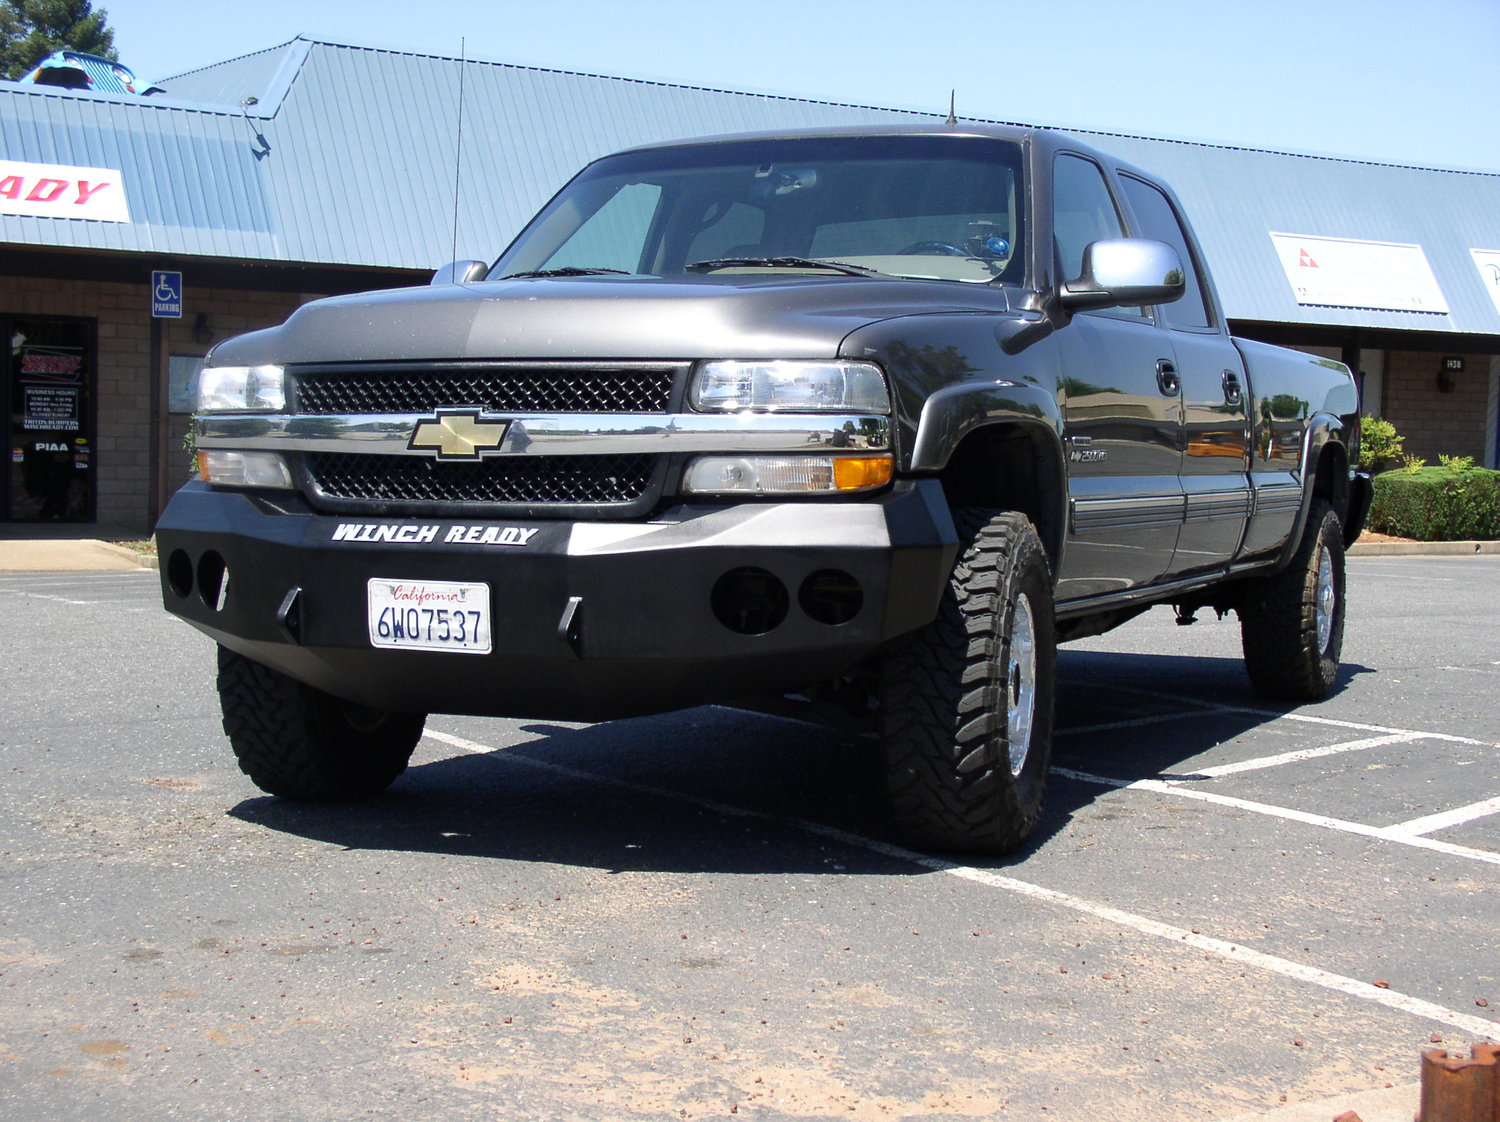 Chevy Models Winch Ready Bumpers